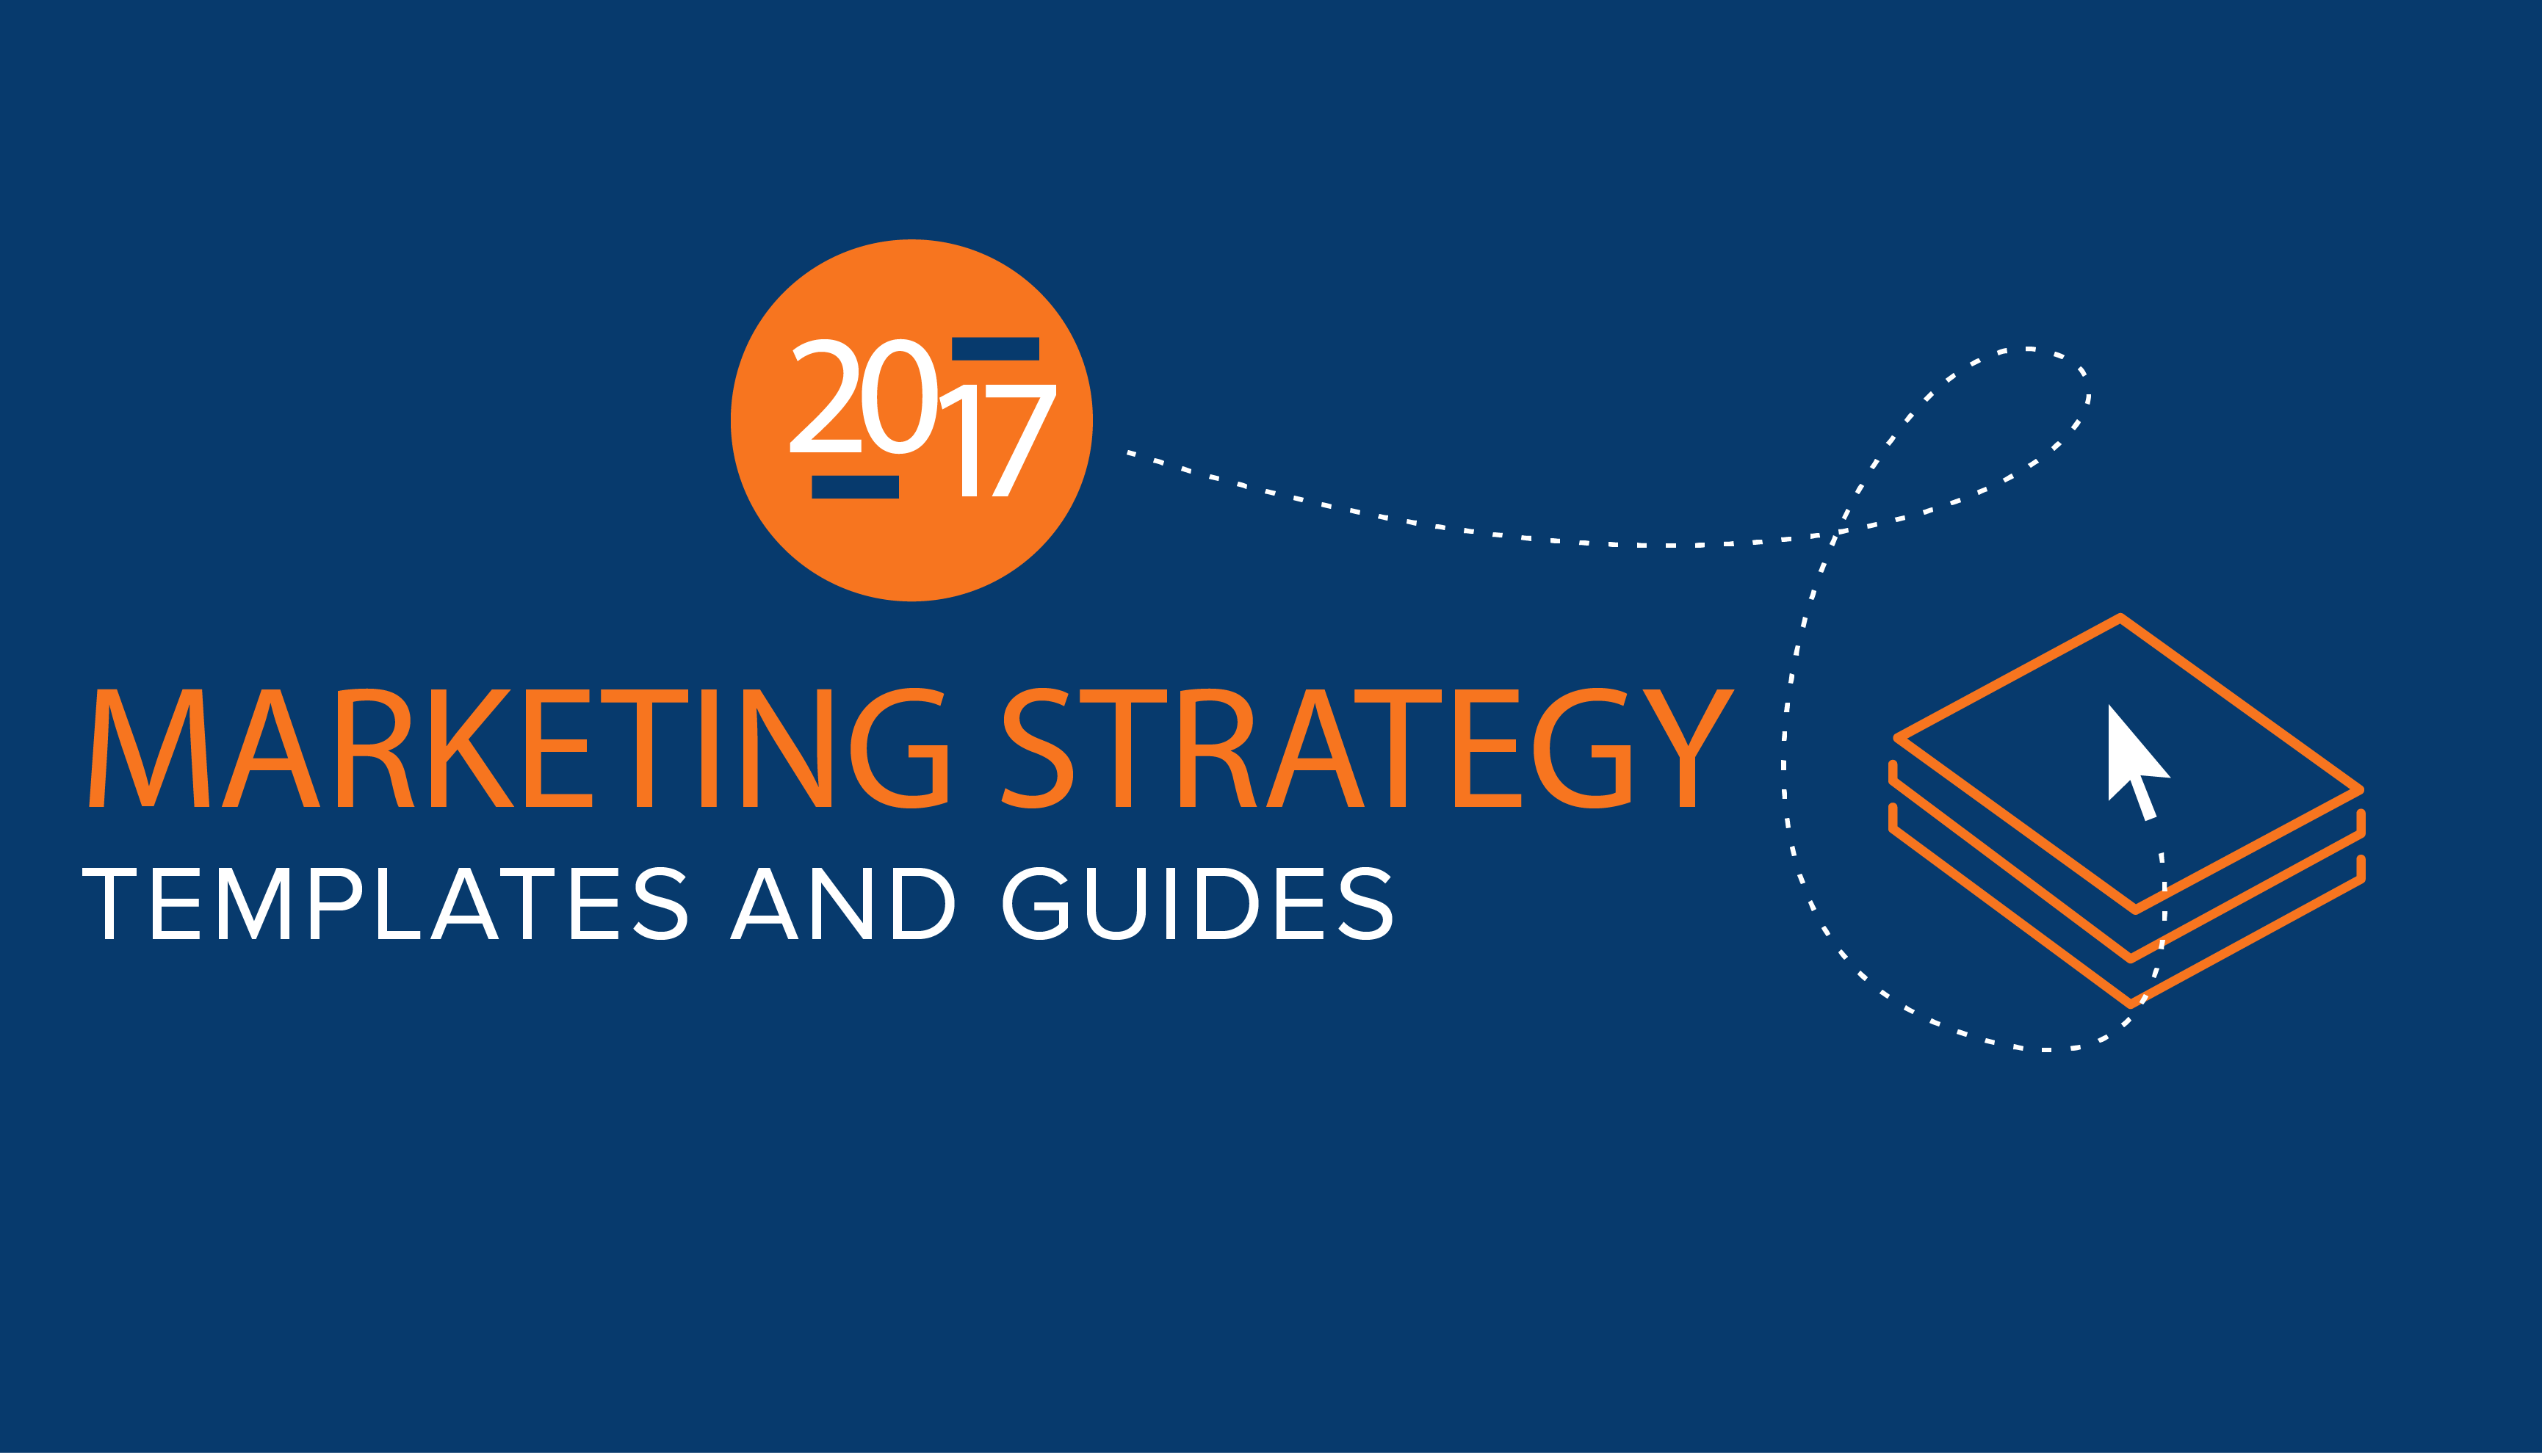 Marketing Strategy Templates Guides - Marketing strategy template